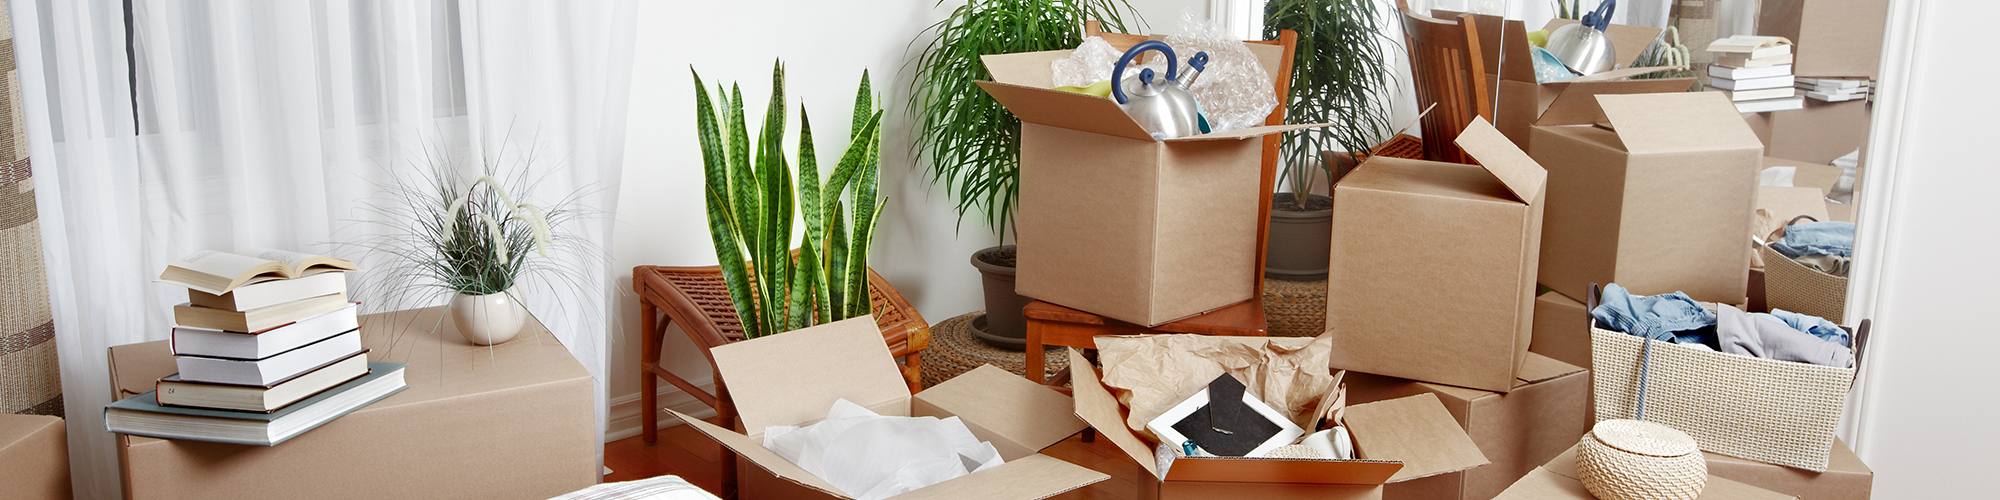 Packing Services in Charlotte, NC